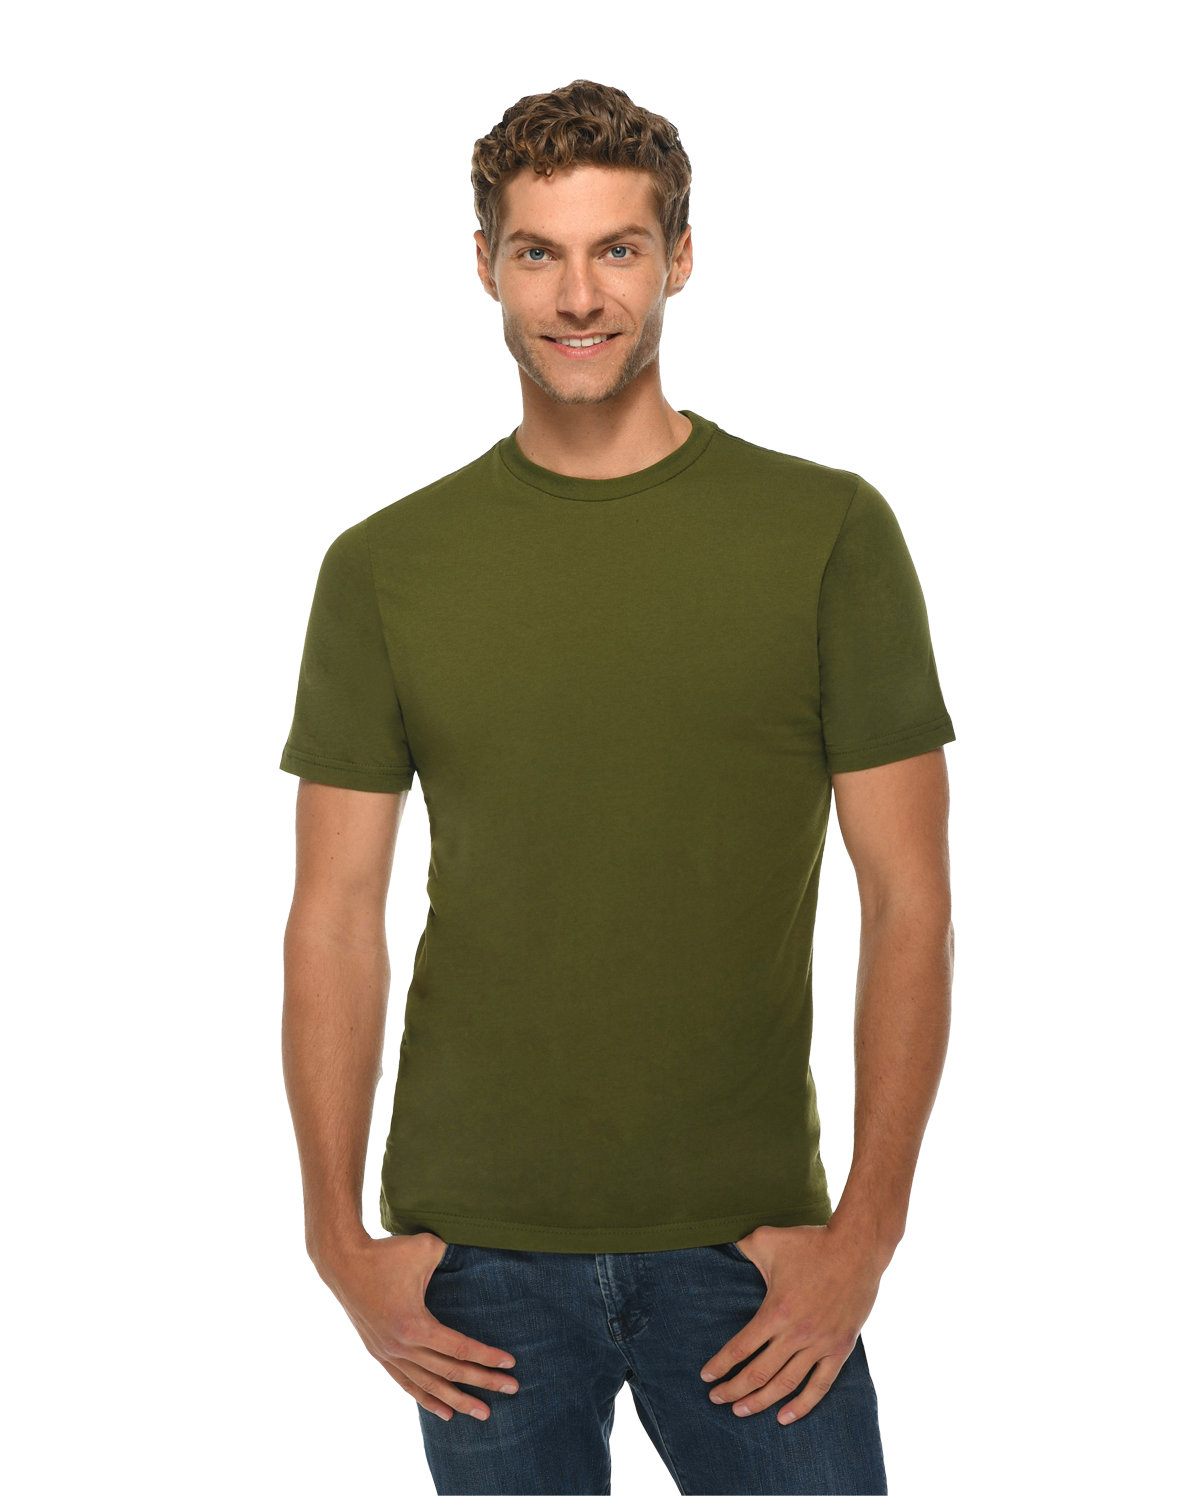 Lane Seven Unisex Deluxe T-shirt ARMY GREEN